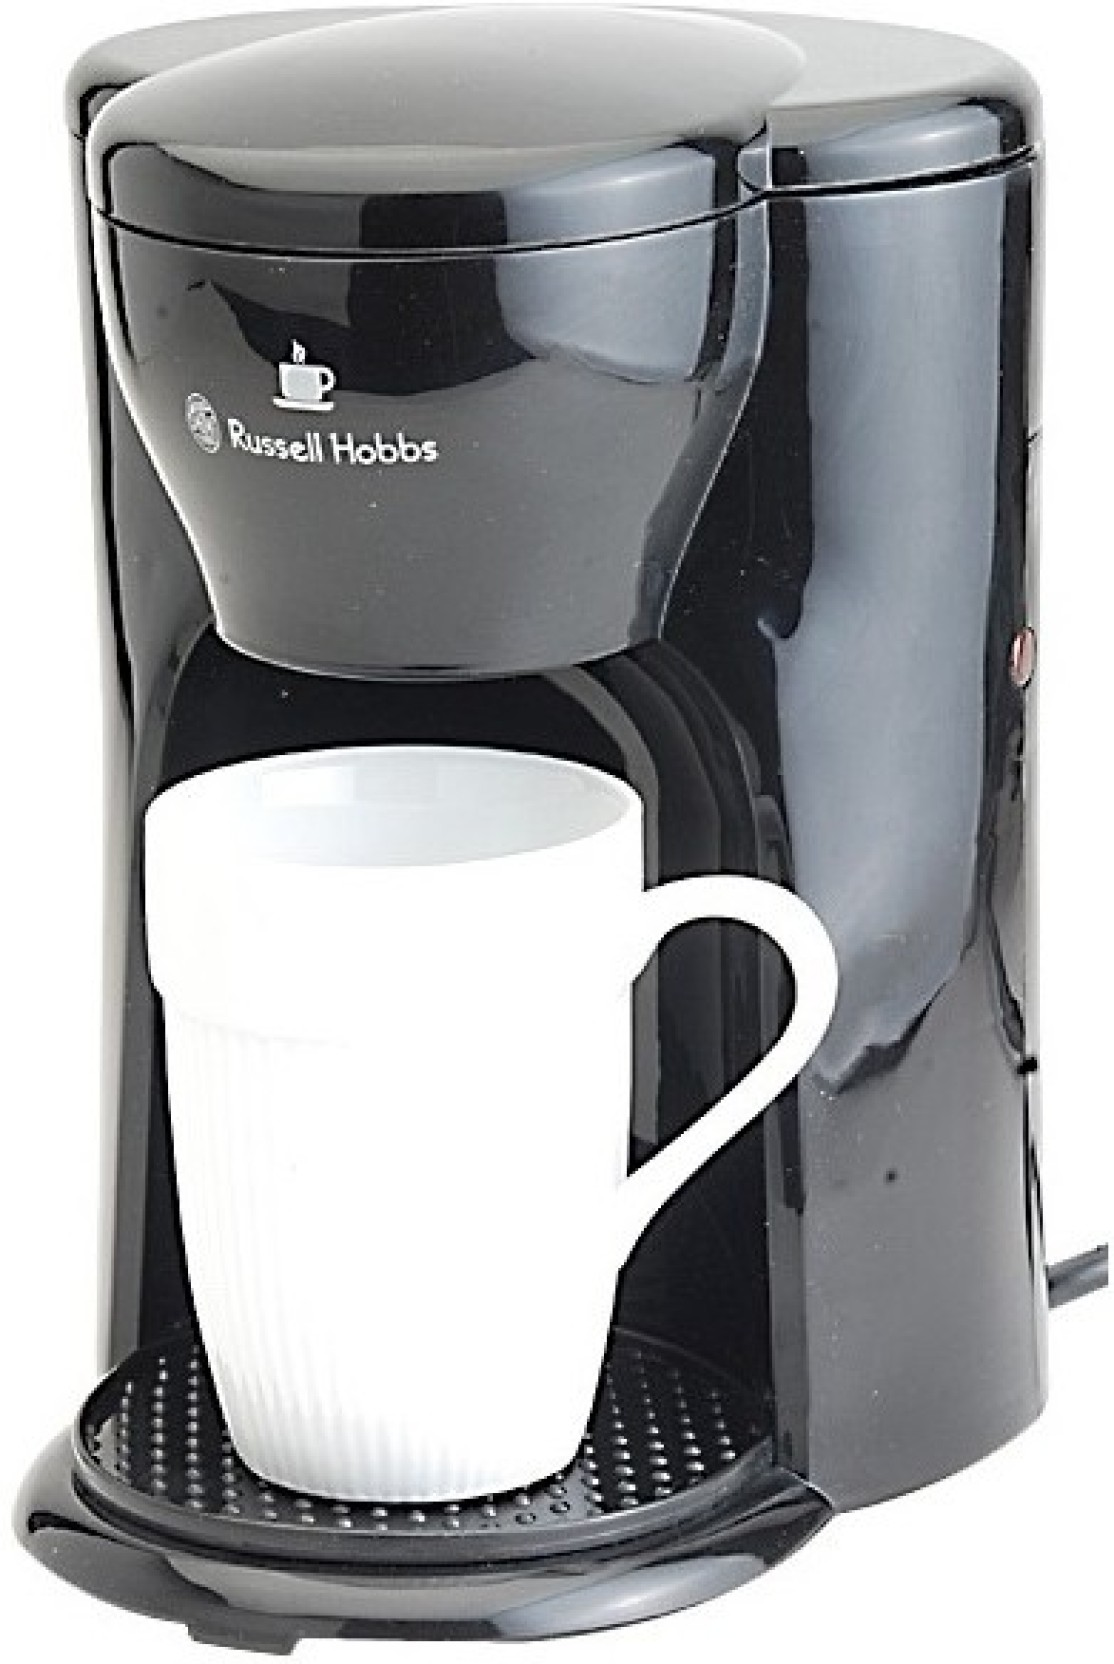 Russell Hobbs RCM1 1 Cups Coffee Maker Price in India ...